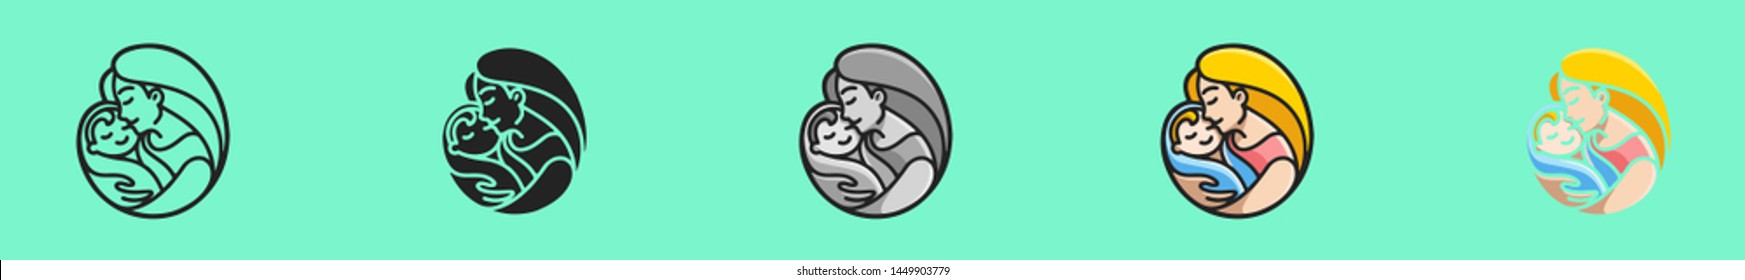 Mother holding a little baby. Concept logo for orphanage, adoption, motherhood project, save child UI UX. Six icons - linear, solid, black and white, color line, multicolored. Flat vector illustration